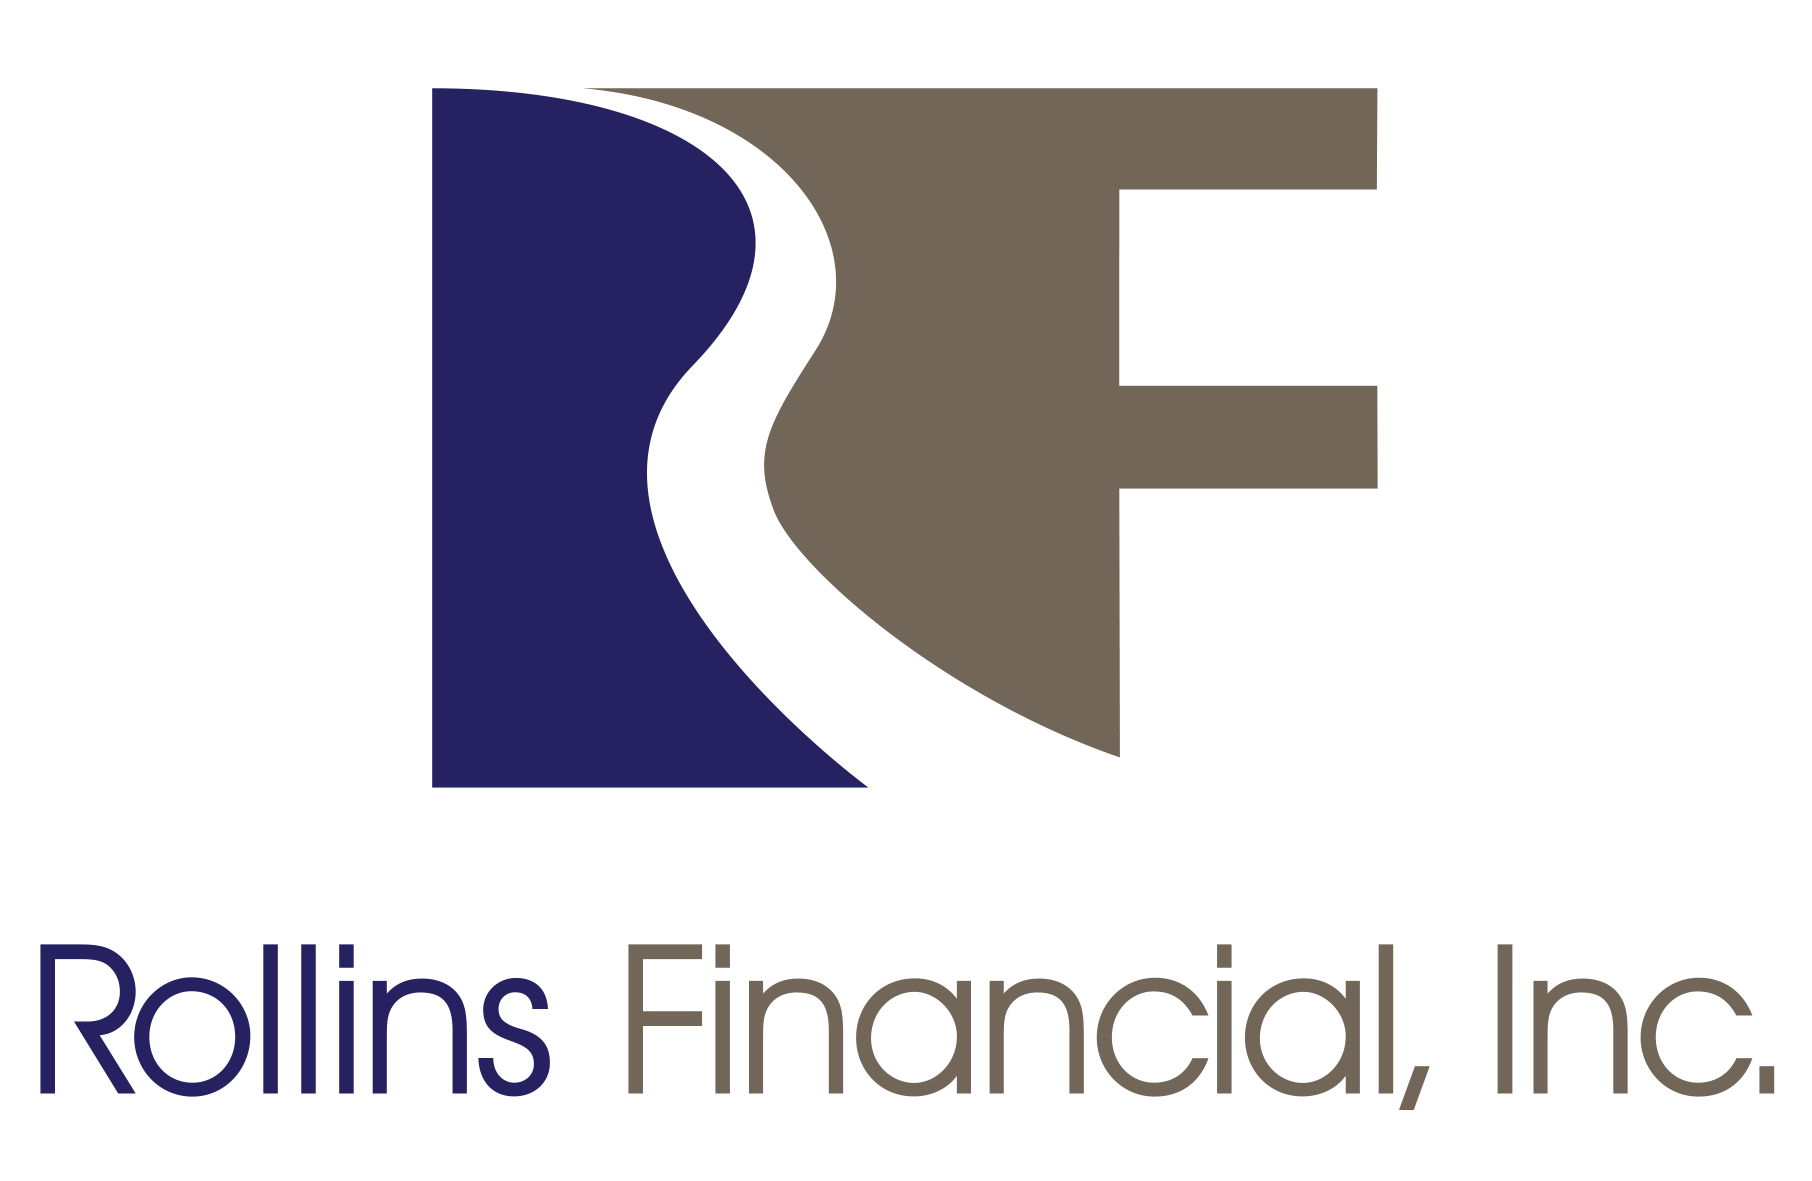 Rollins Financial_select_color_logo_type